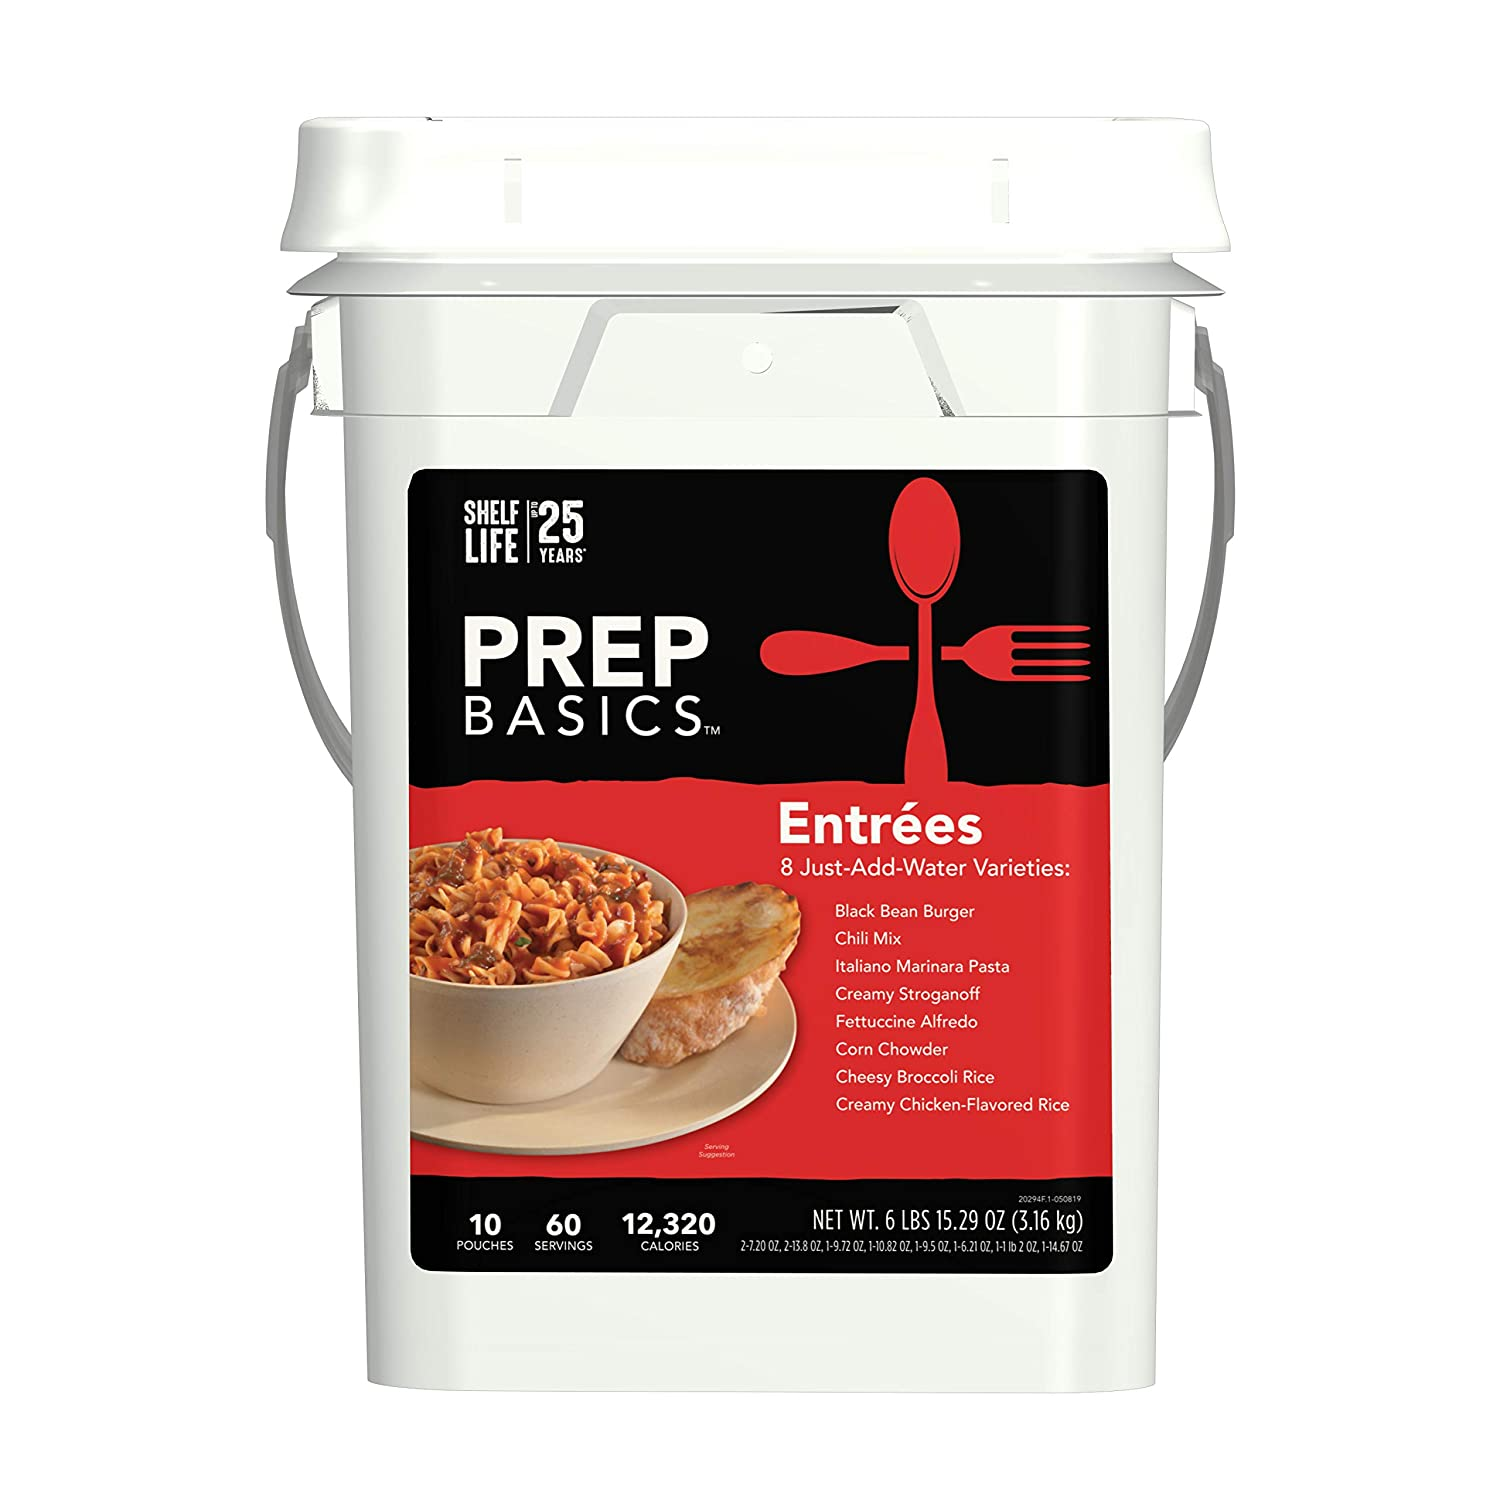 Prep Basics Entrée Variety | Emergency Food Supply | 12,280 Total Calories | 380 Total Grams Protein | Up to 25 Year Shelf Life | 10 Sealed Pouches